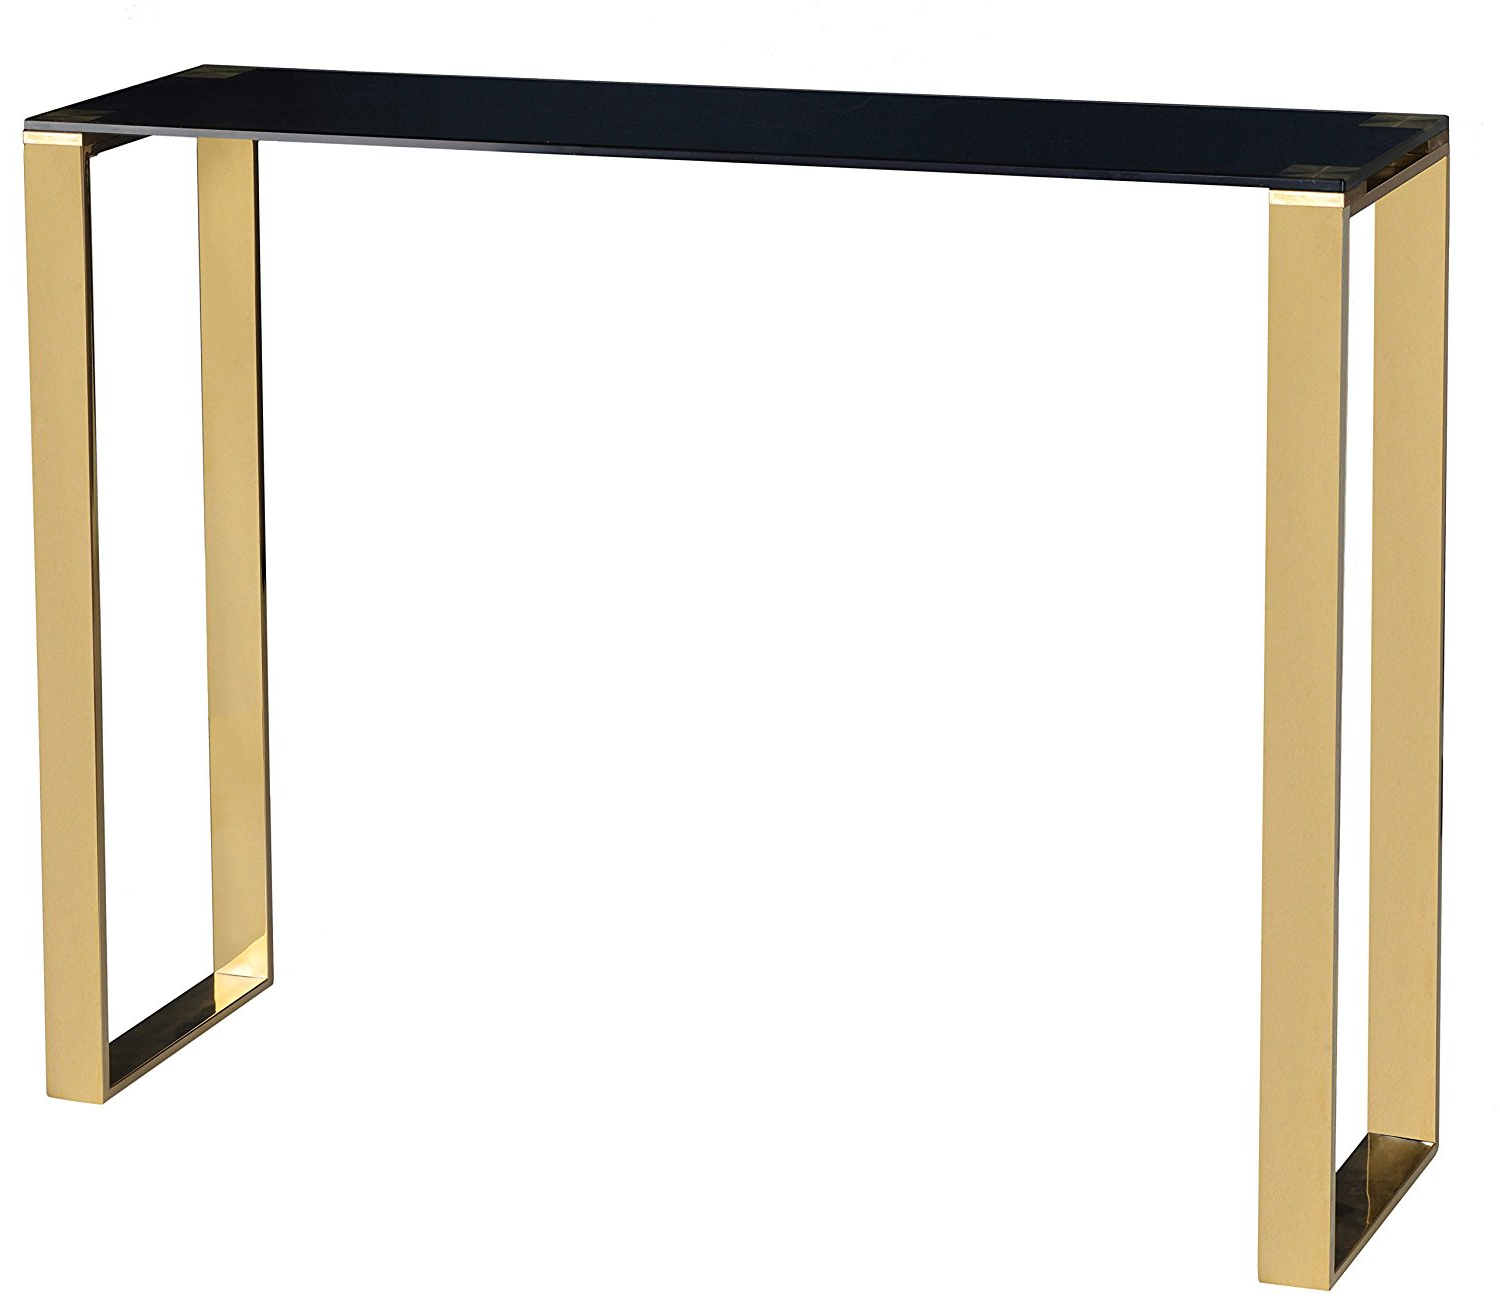 Buy Cortesi Home Remini Narrow Contemporary Glass Console Within Popular Cortesi Home Remi Contemporary Chrome Glass Coffee Tables (View 2 of 20)